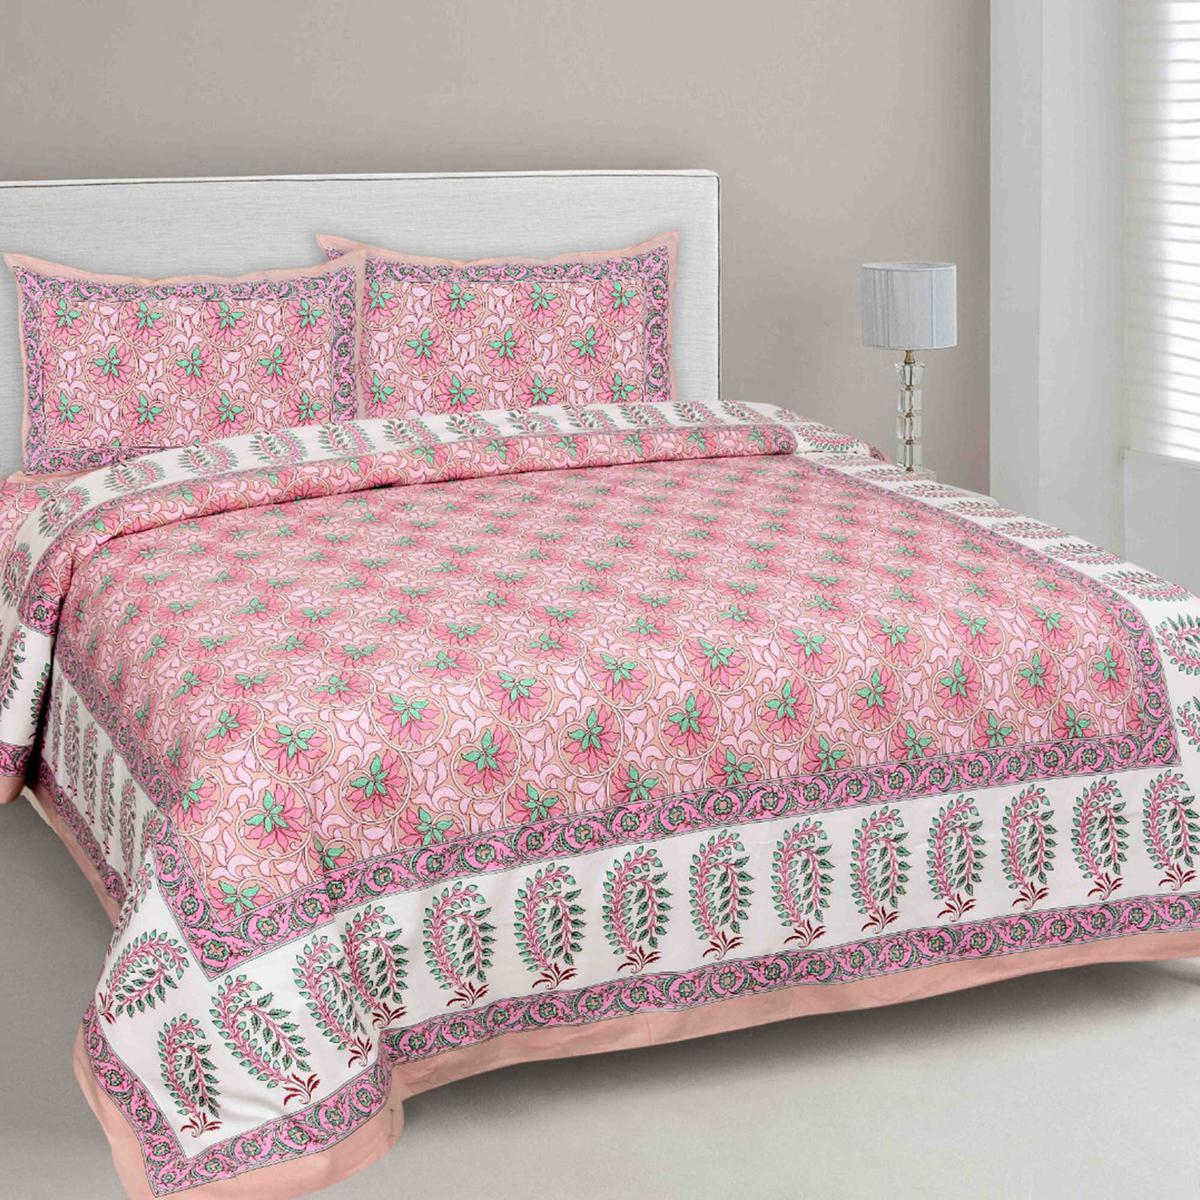 Ethnic Pink Colored Floral Printed Cotton Double Bedsheet With Pillow Cover